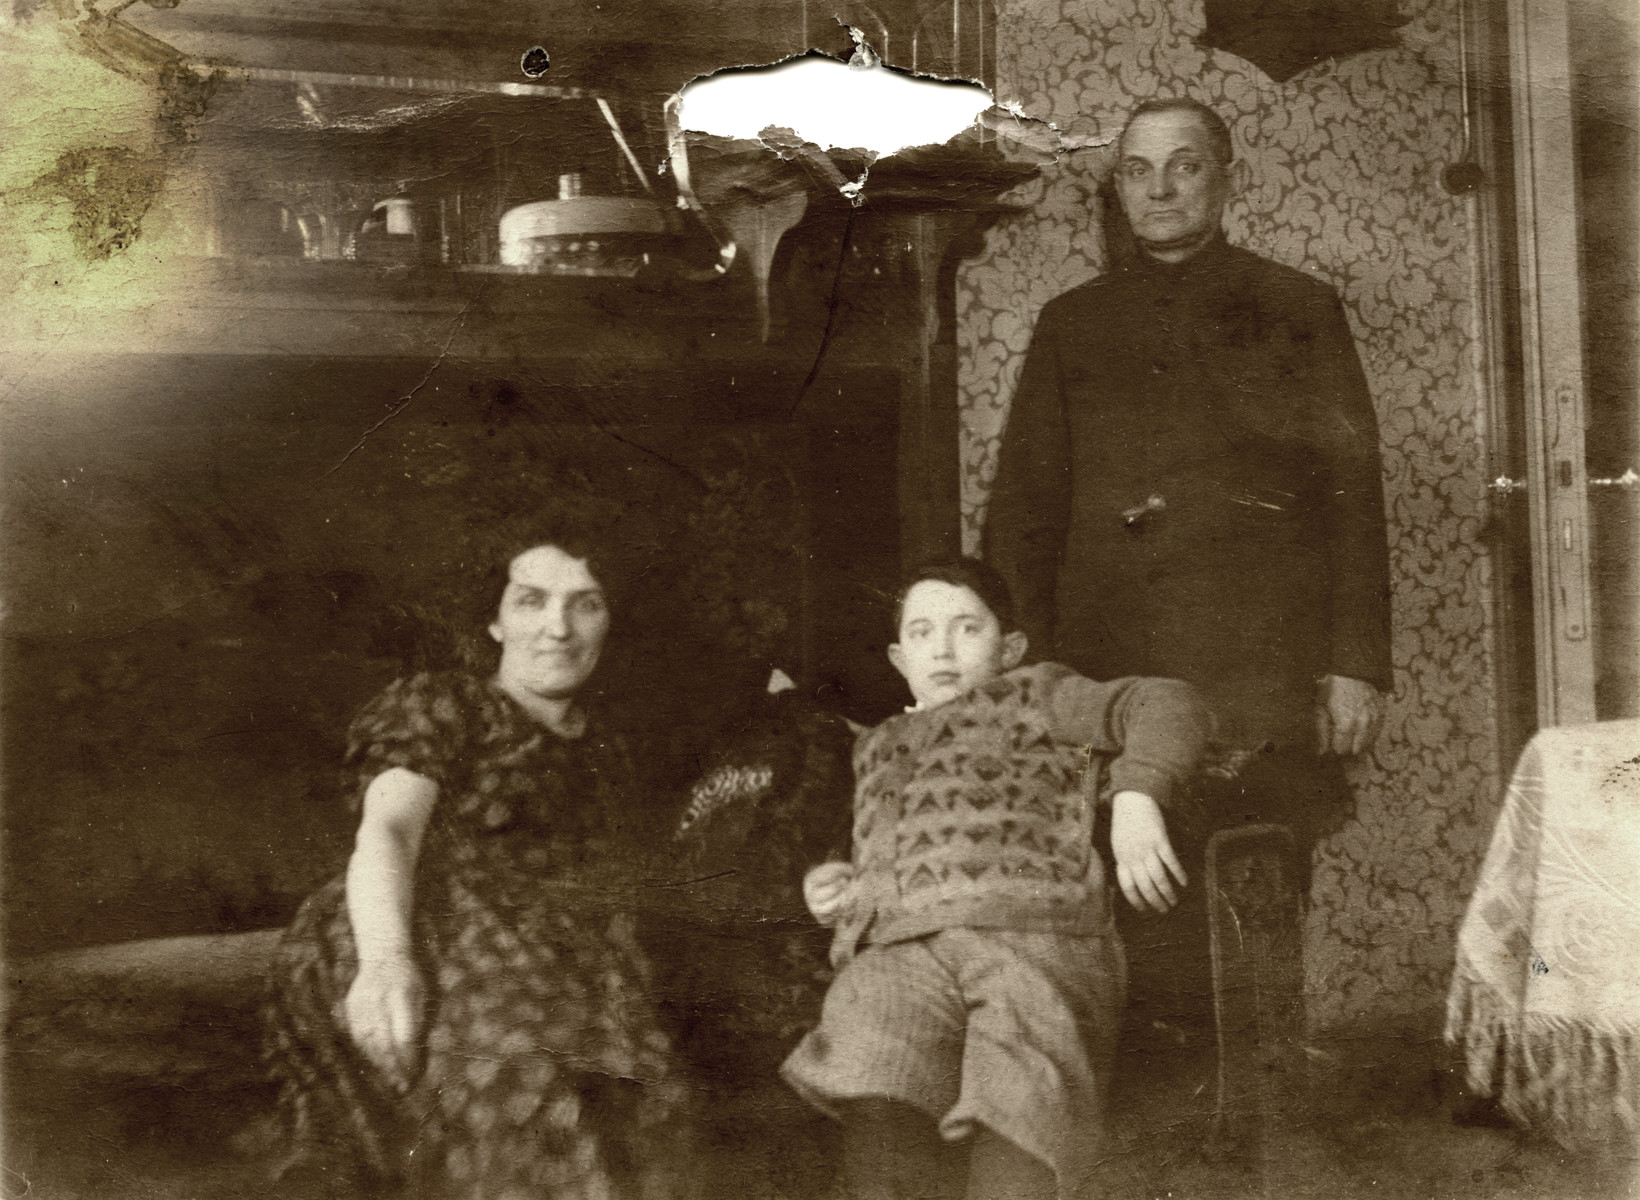 David Svirsky poses with his parents in their apartment in Vilna.